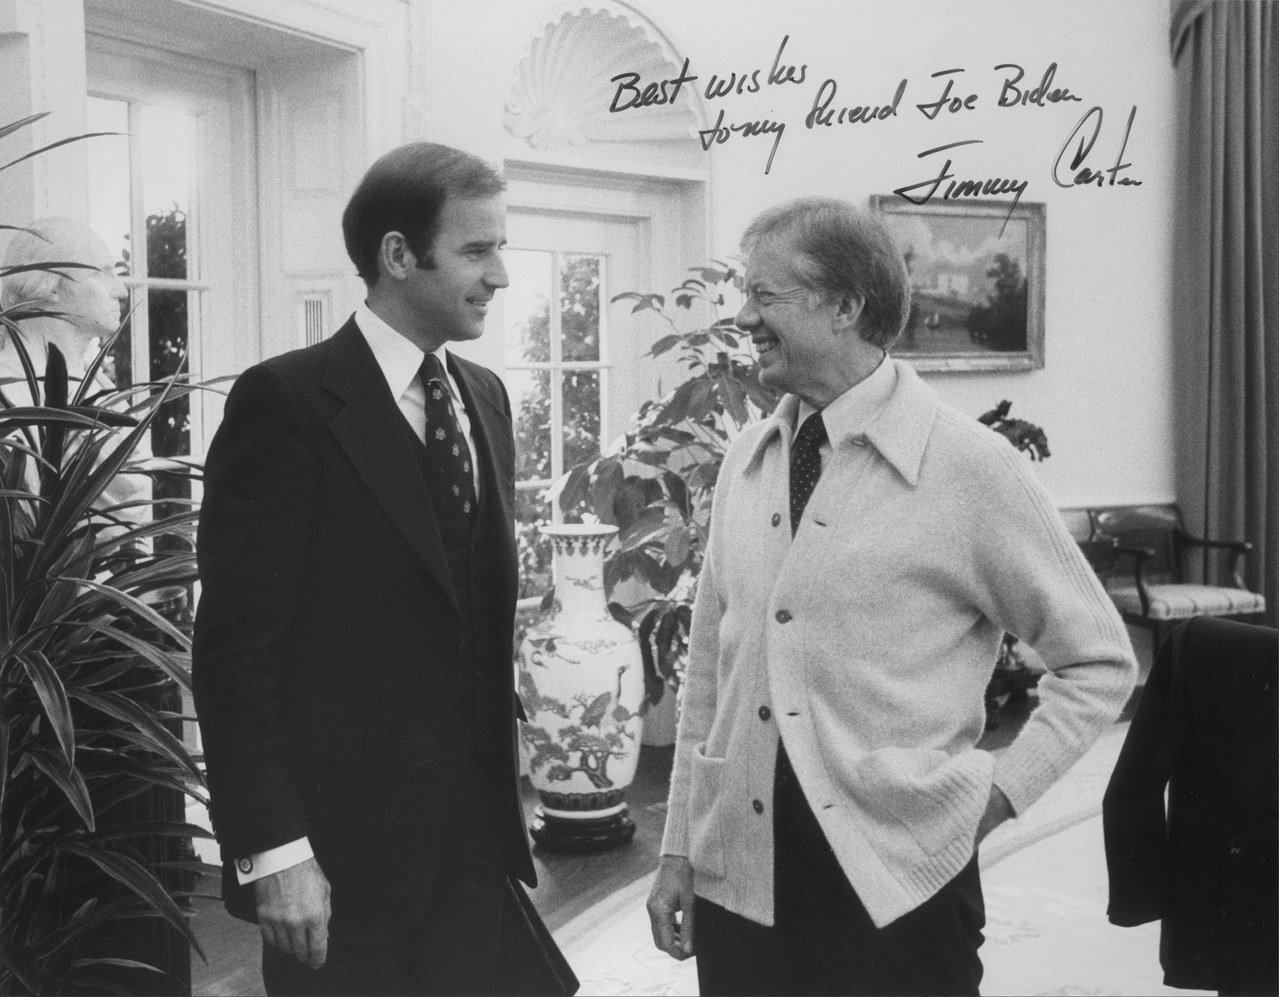 Joe Biden and Jimmy Carter.jpg